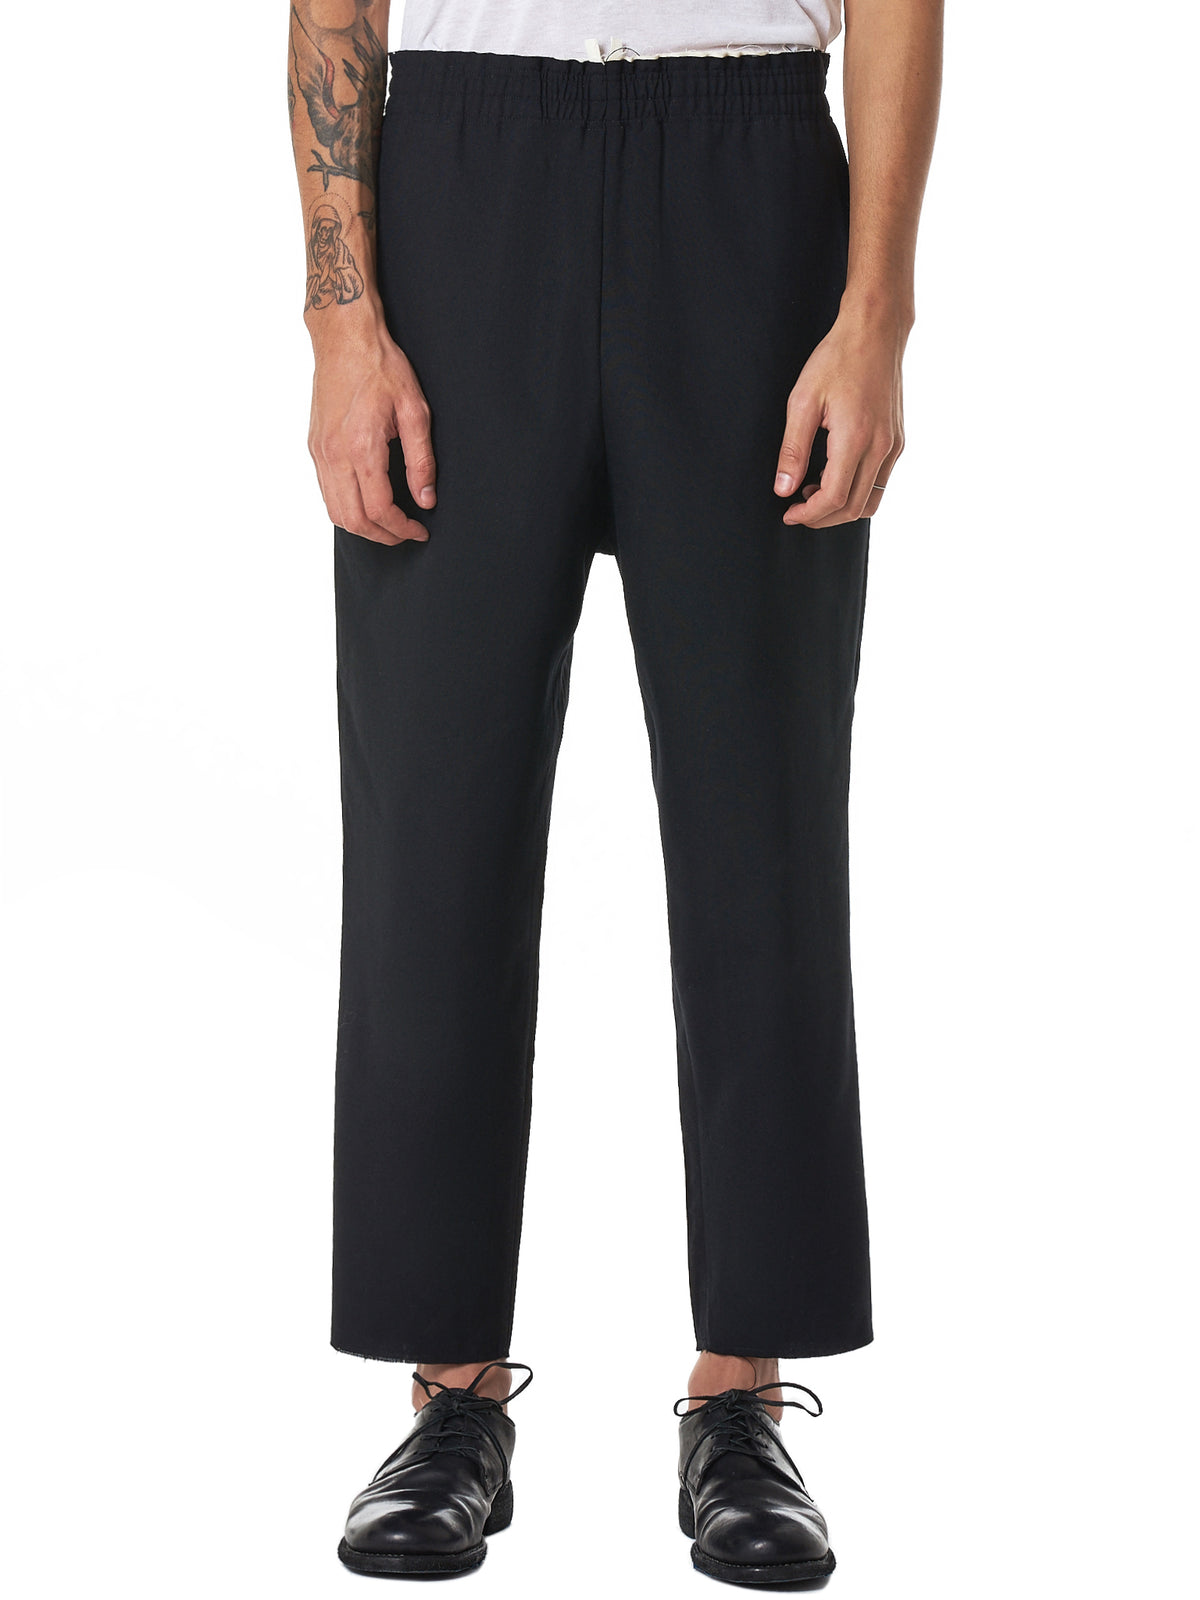 Camiel Fortgens Trousers - Hlorenzo Front